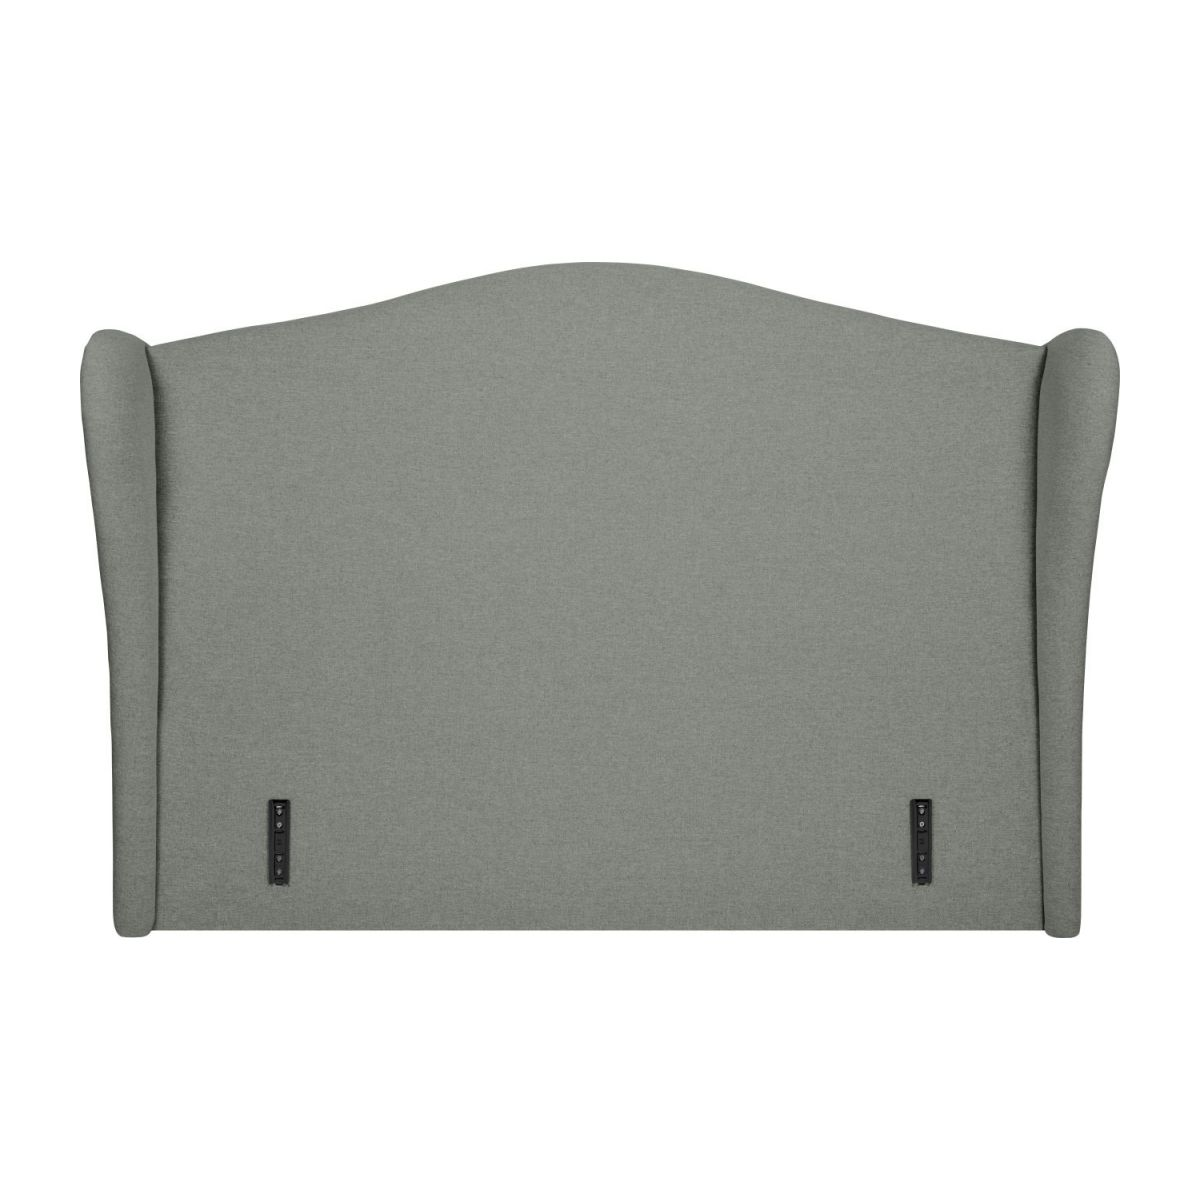 Headboard for 140cm box spring in fabric, mouse-grey n°3